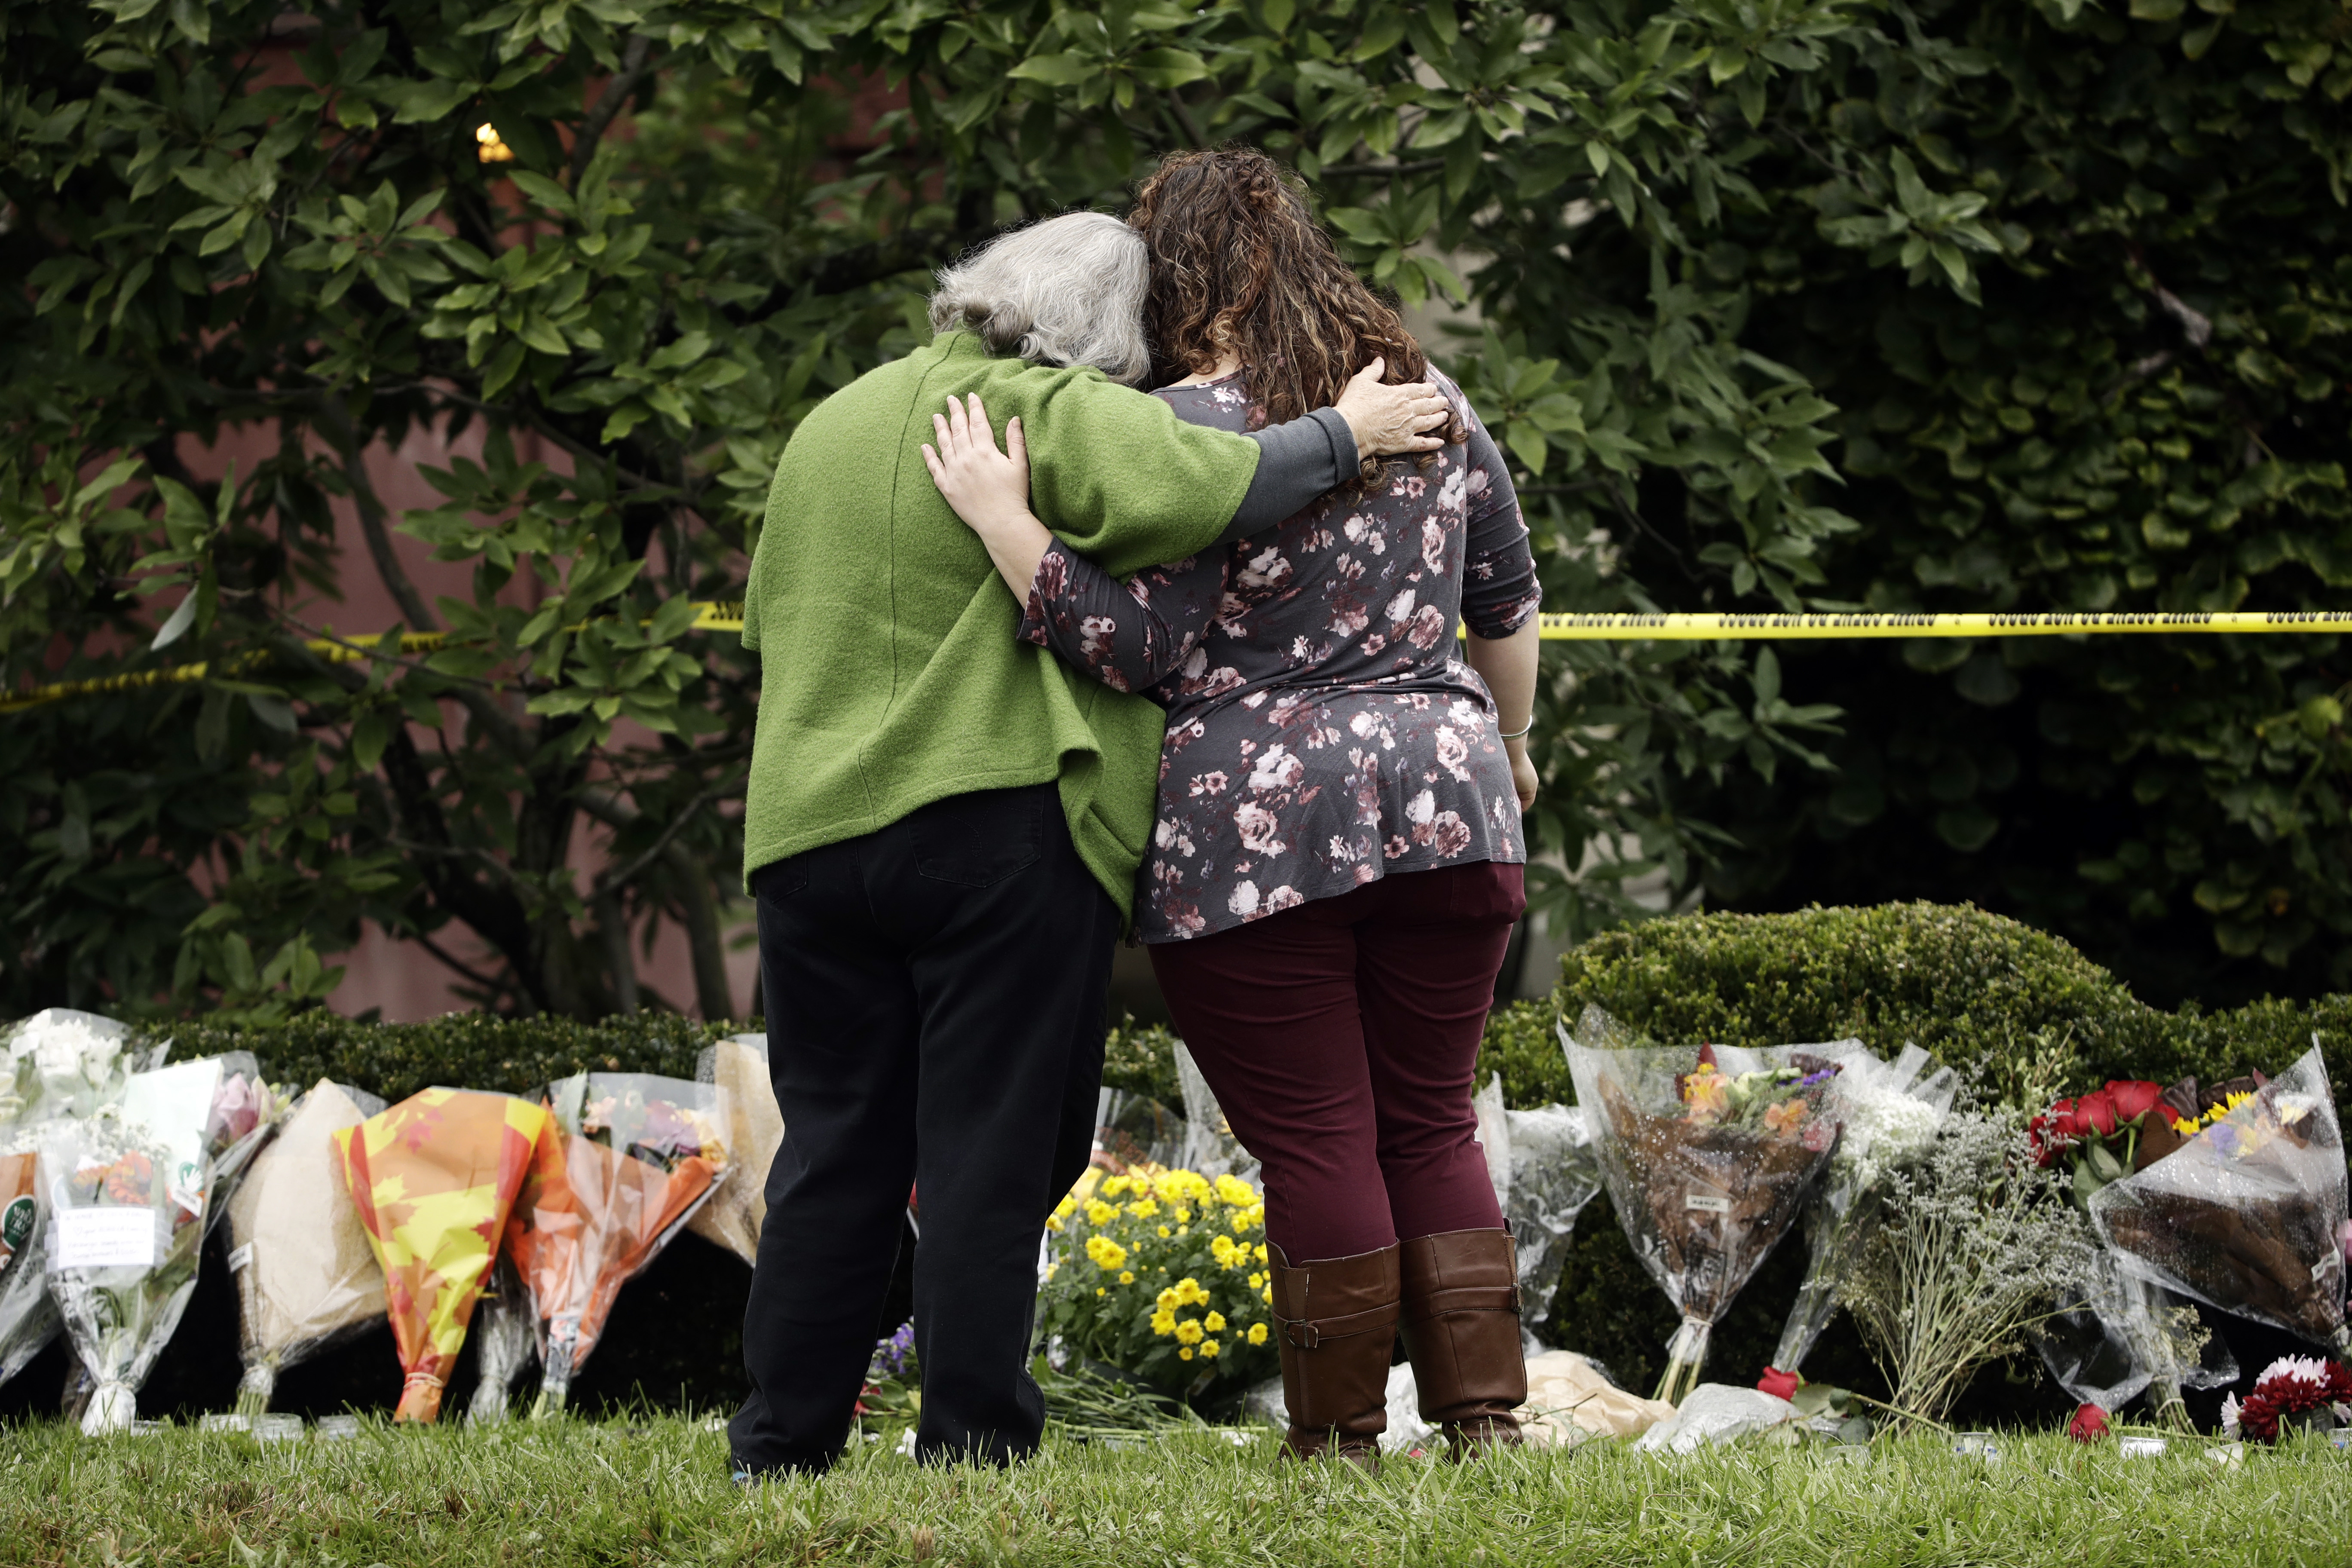 Officials Identify 11 Victims In Deadly Pittsburgh Synagogue Shooting